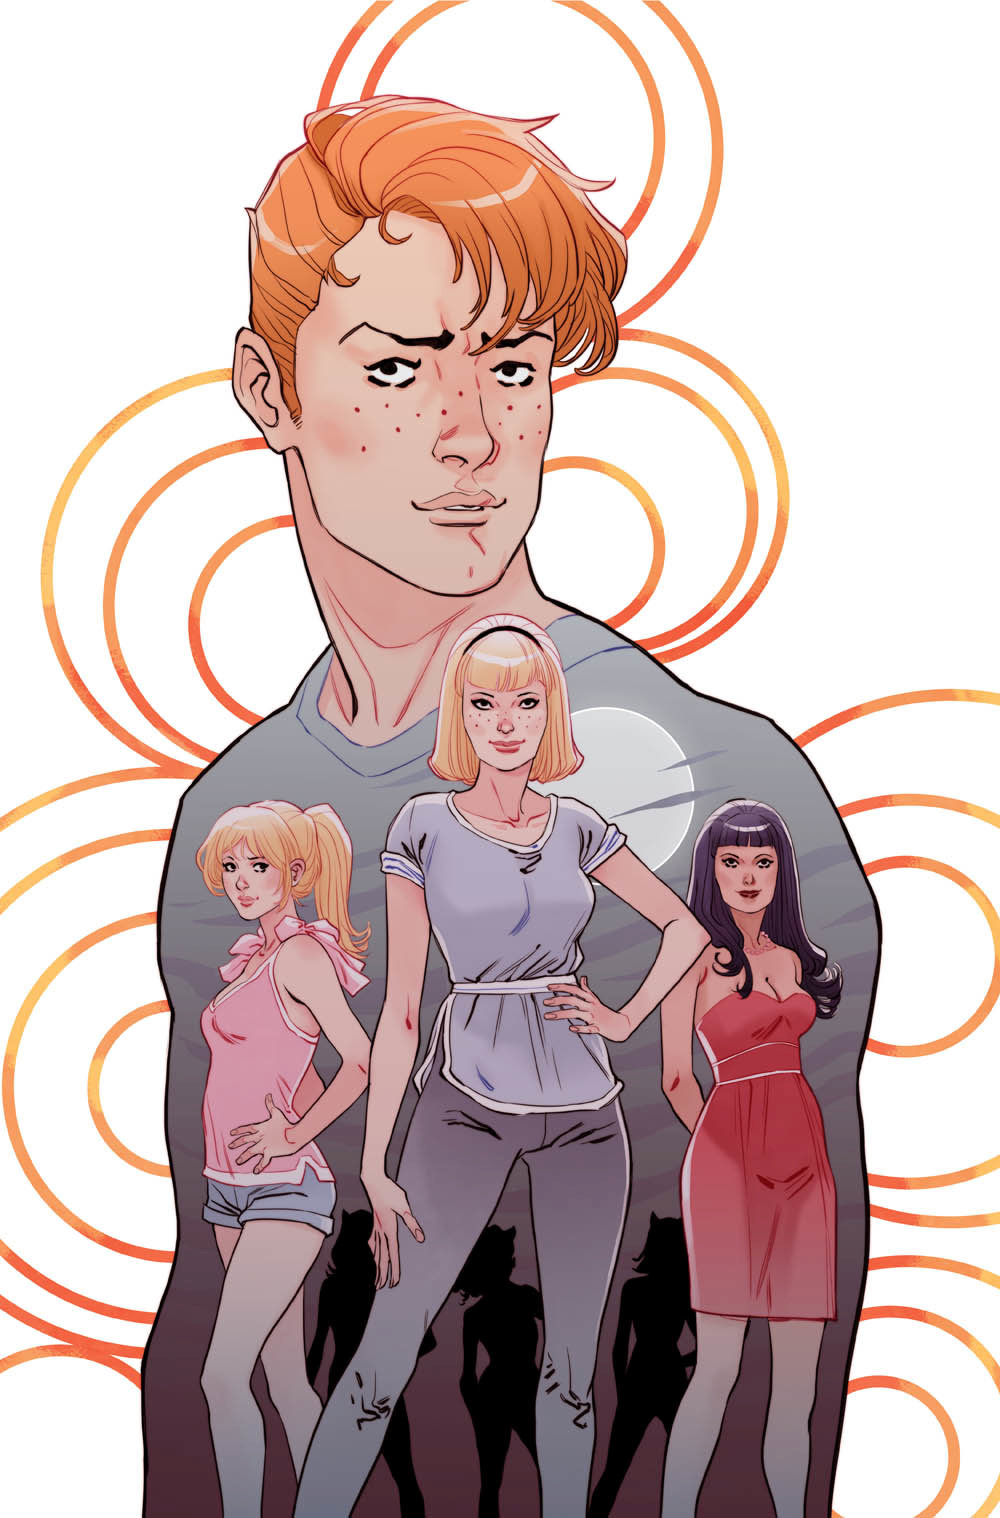 Archie's 700th Issue Moves the Riverdale Gang in New Directions - The all-new Betty & Veronica series was announced in an exclusive New York Times article that featured some quotes from me.